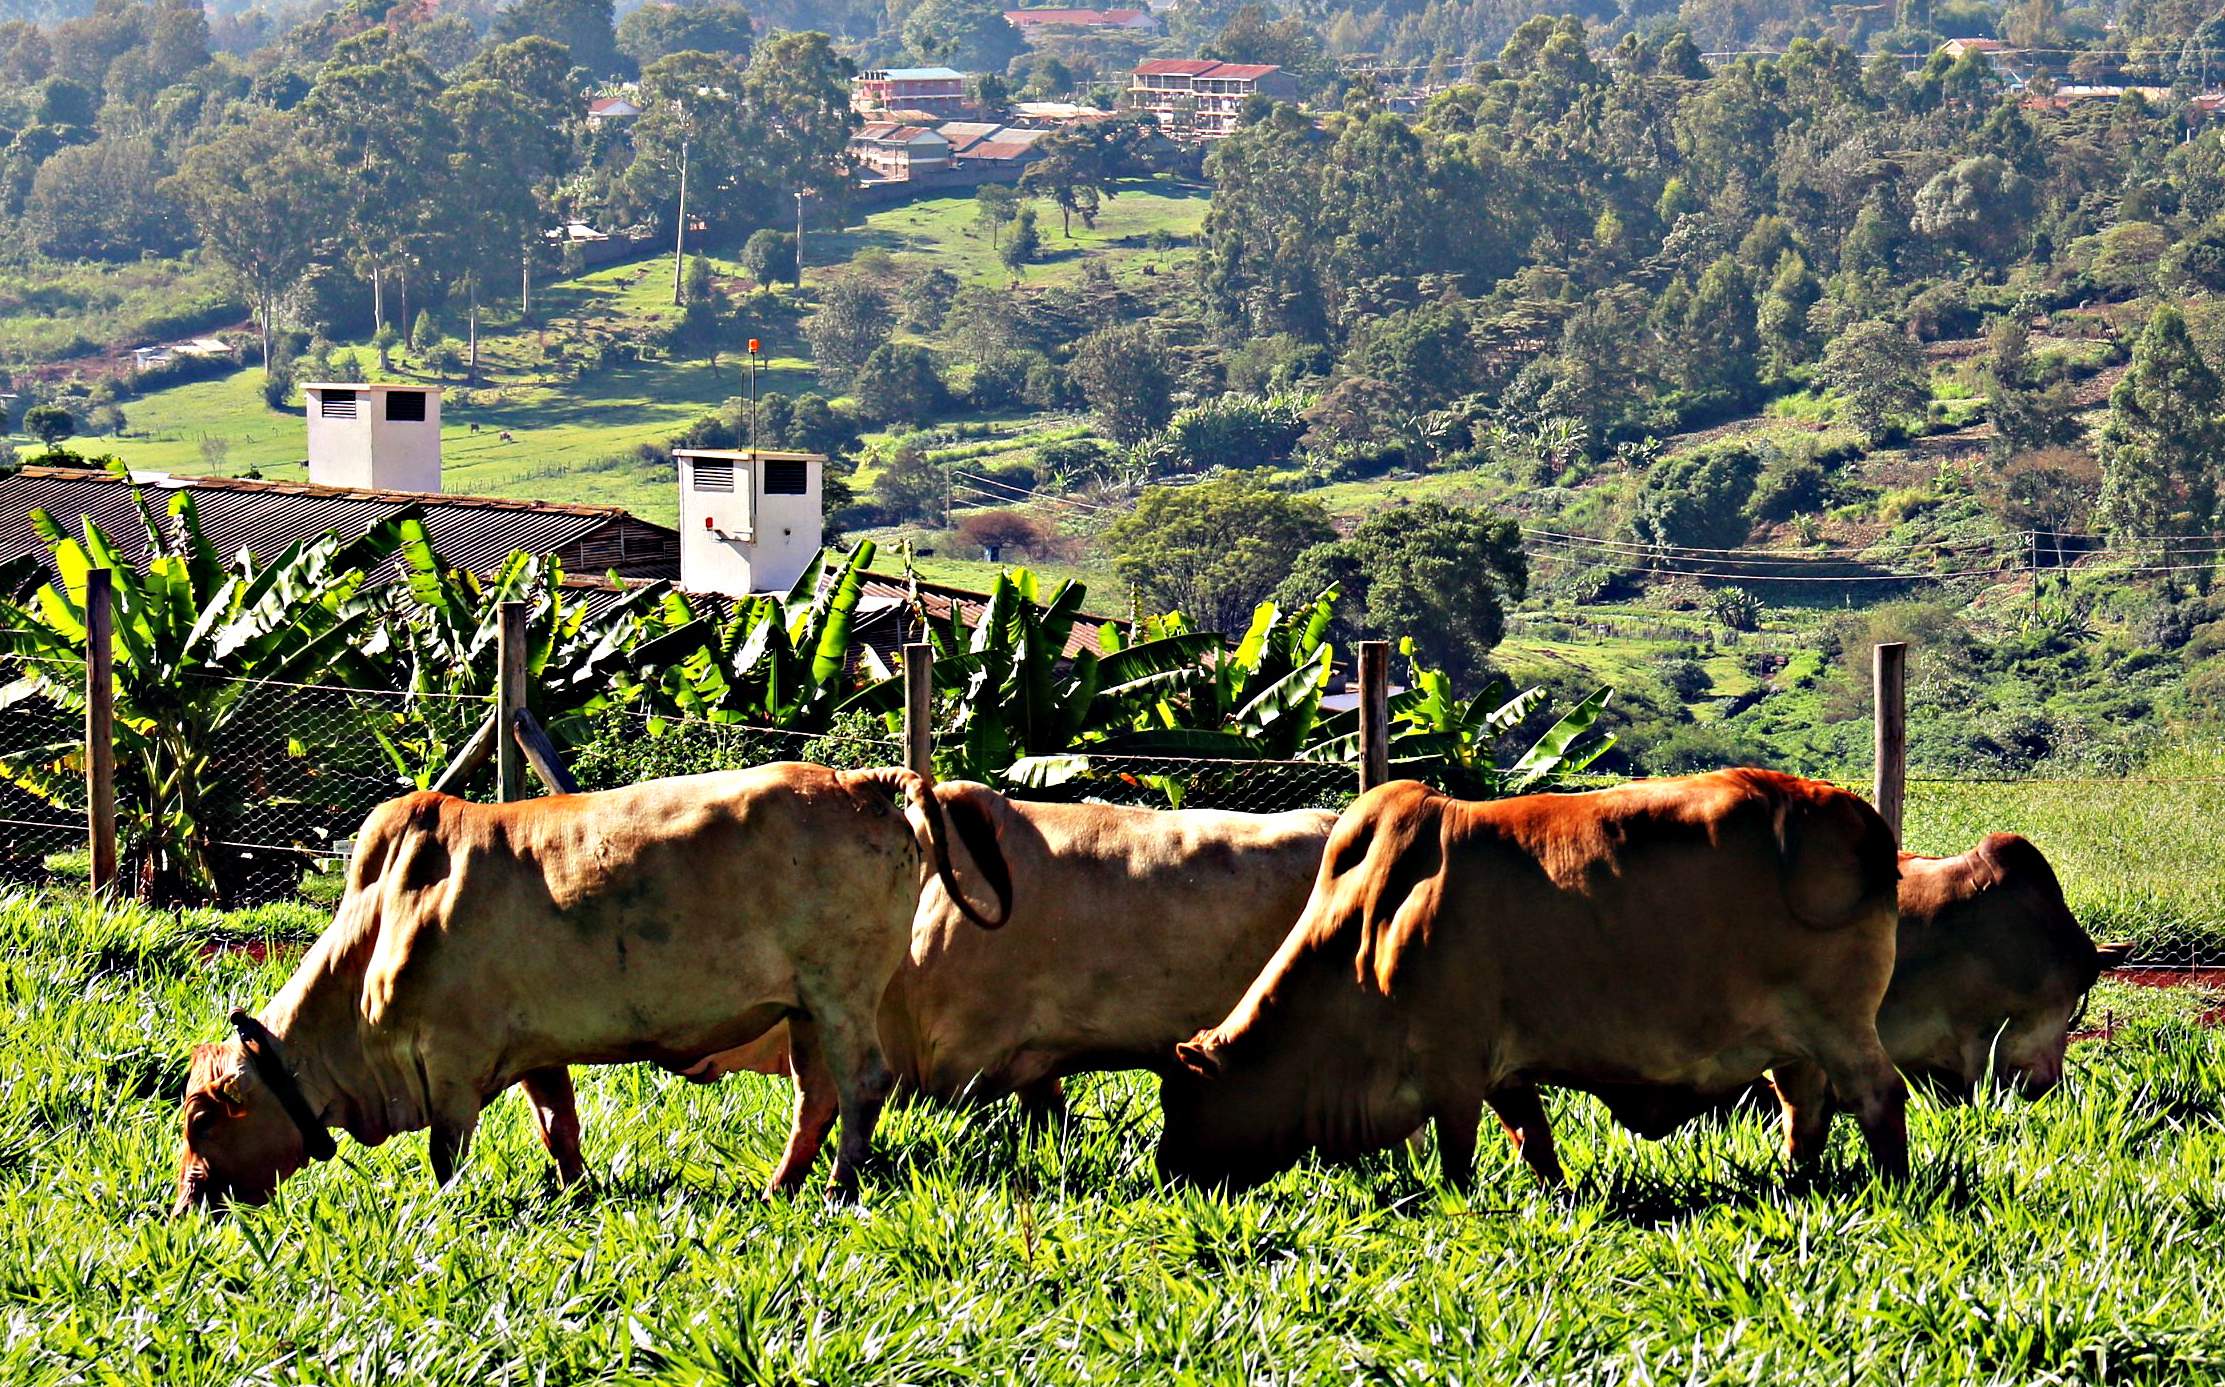 Lesotho attempts to scale-up beef production